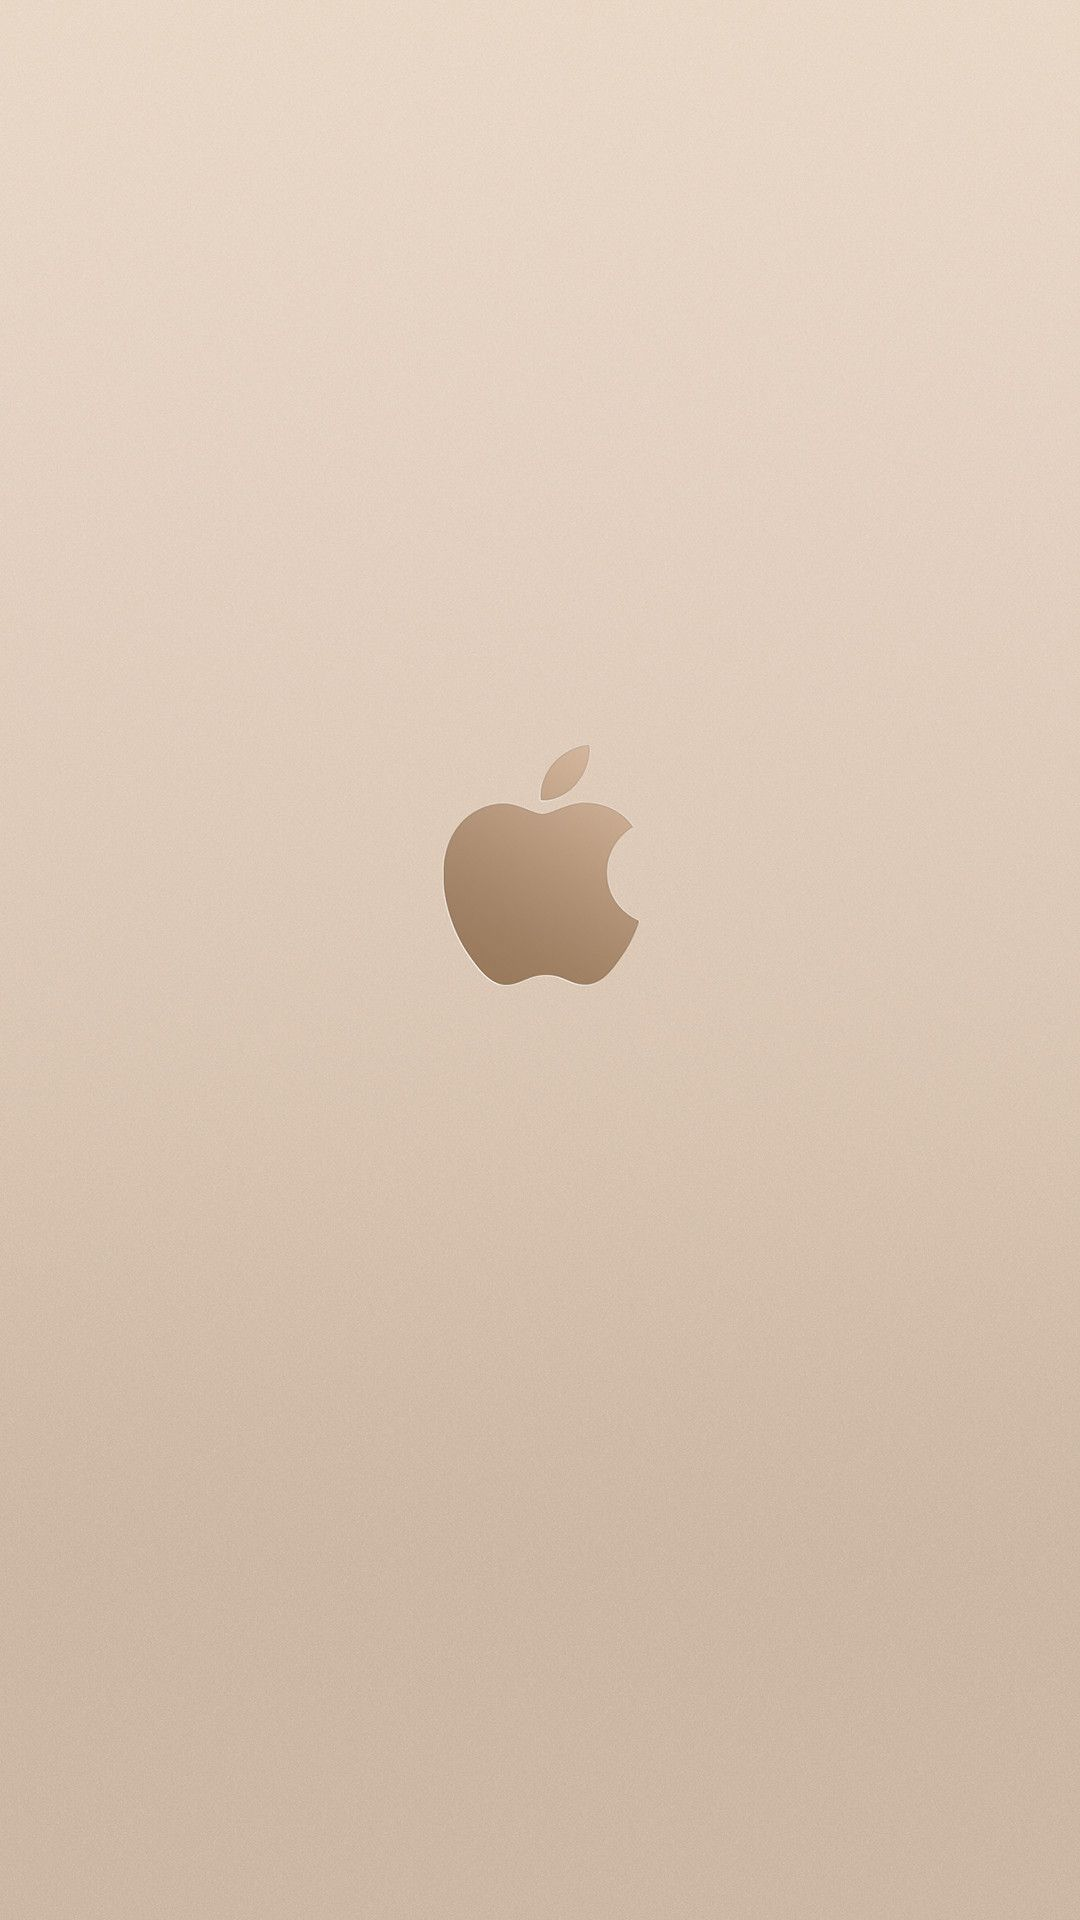 Champagne Gold Apple Logo Champagne Gold Apple Logo Apple Logo Wallpaper Iphone